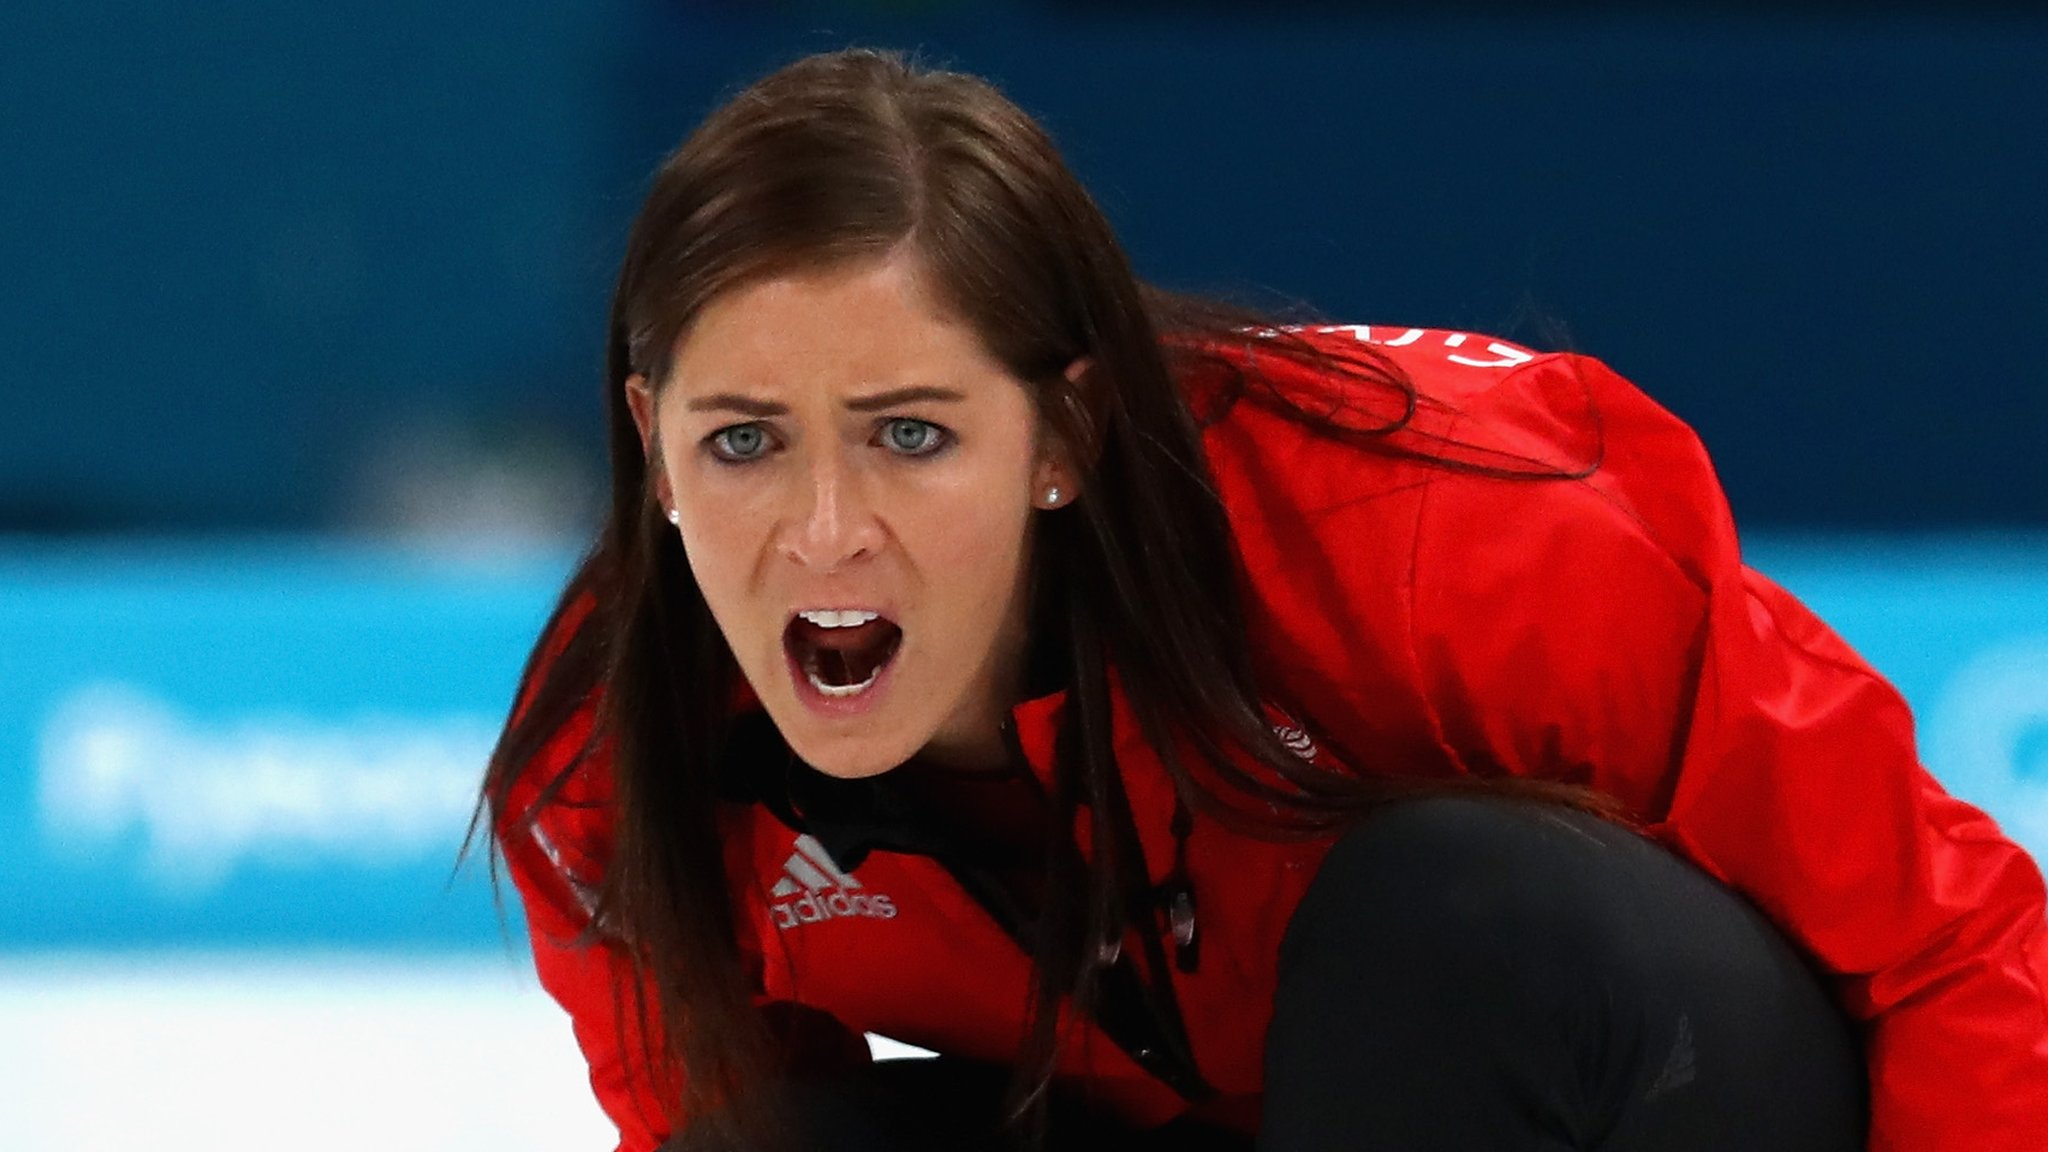 Scottish Curling sends Jackson's rink to World Championship following review of decision